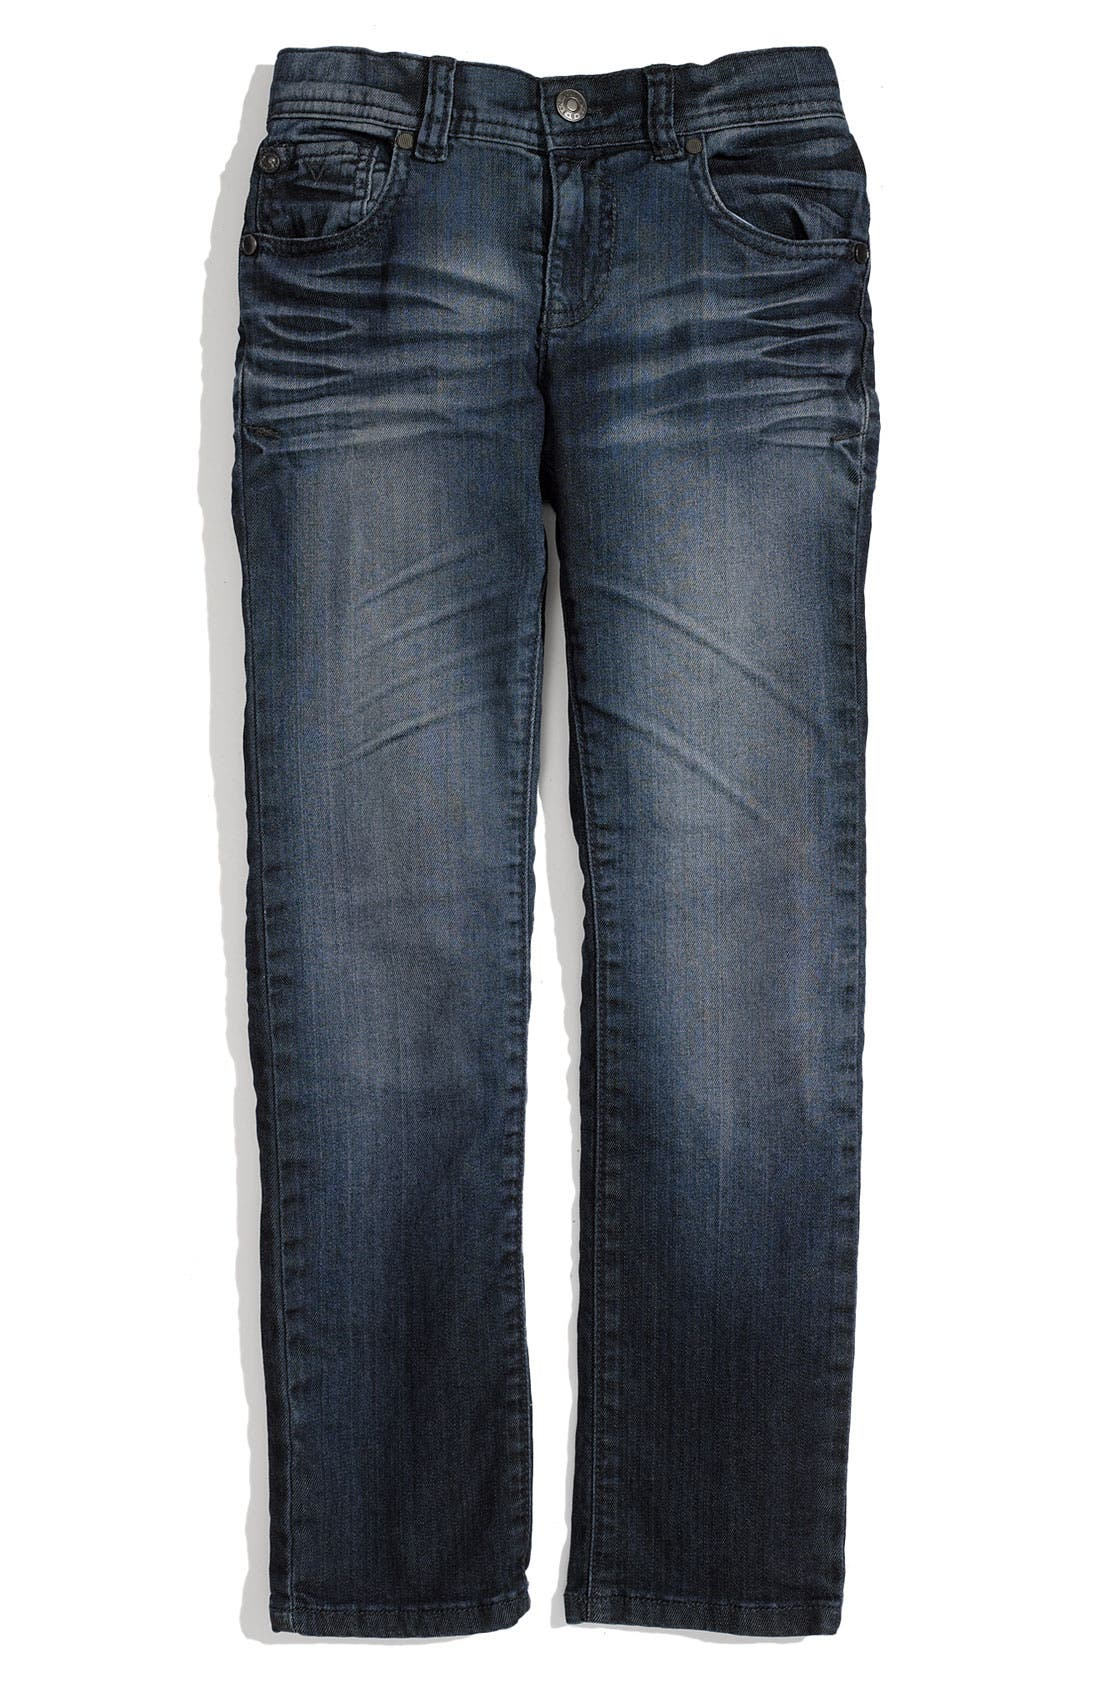 Skinny Stretch Jeans,                             Alternate thumbnail 2, color,                             420